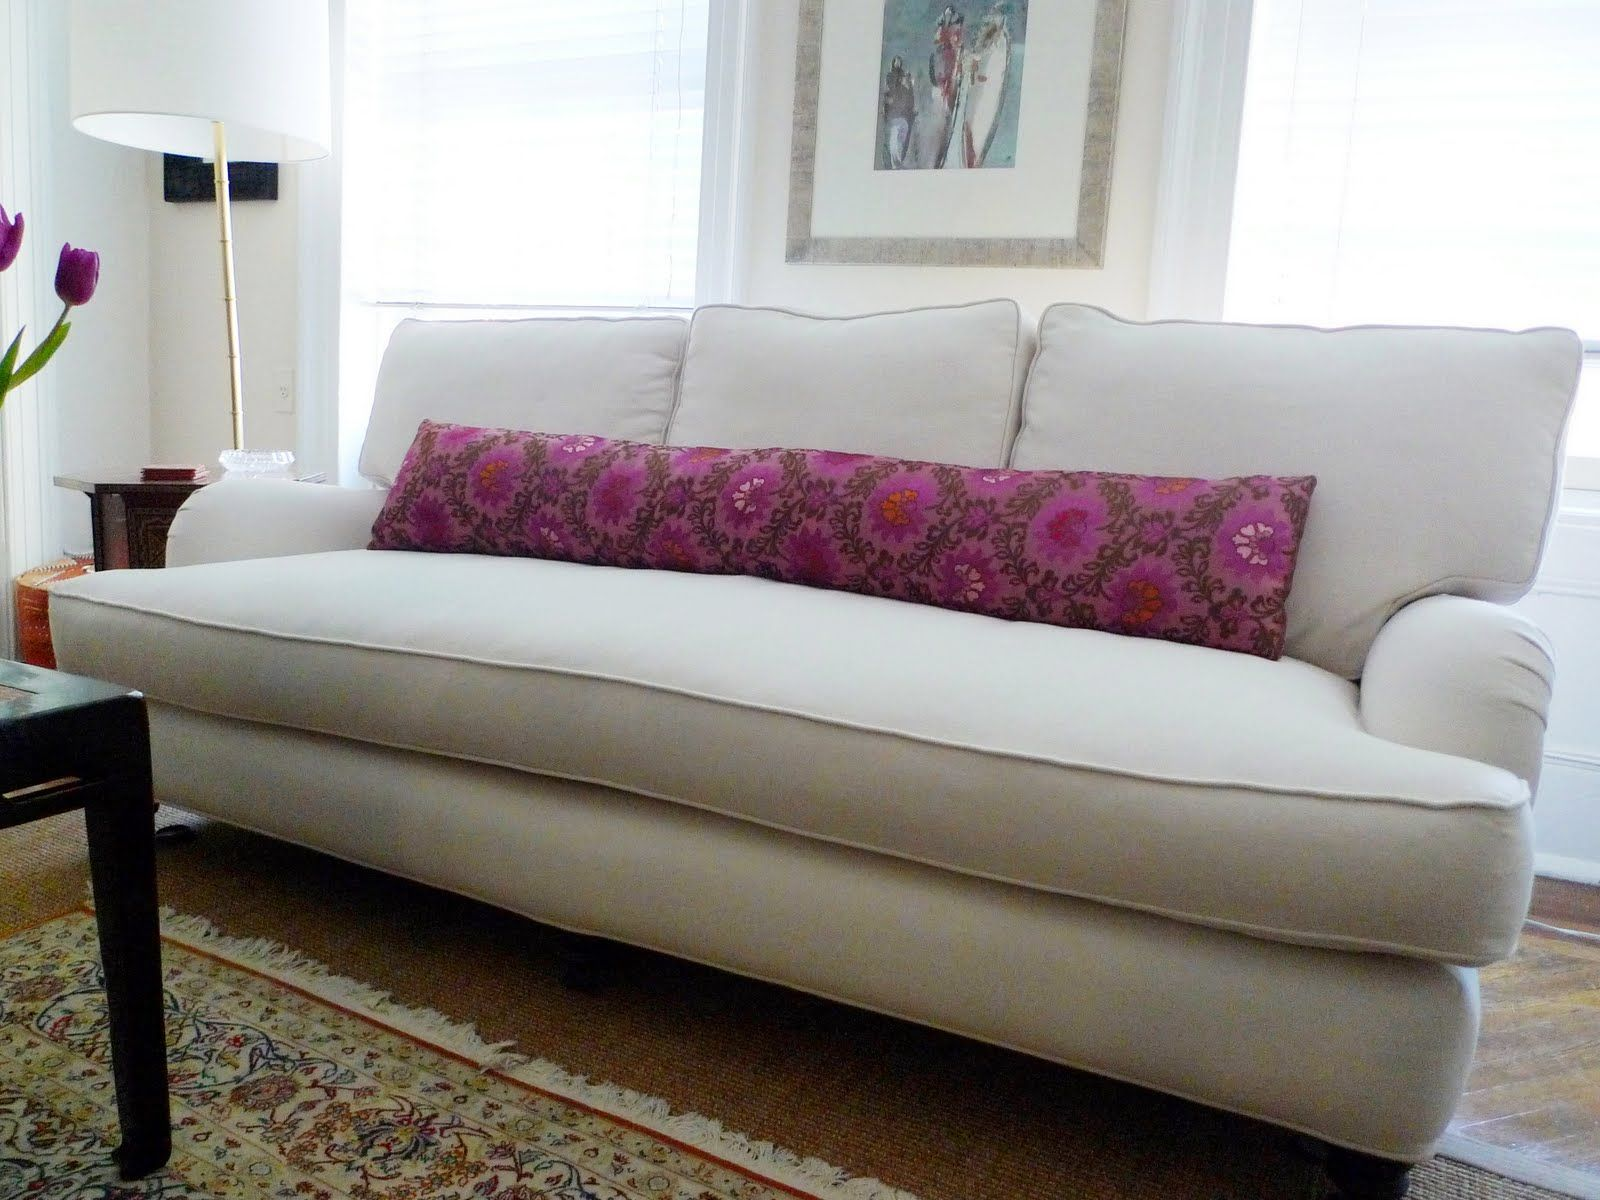 Beautiful pillow on the single cushion sofa